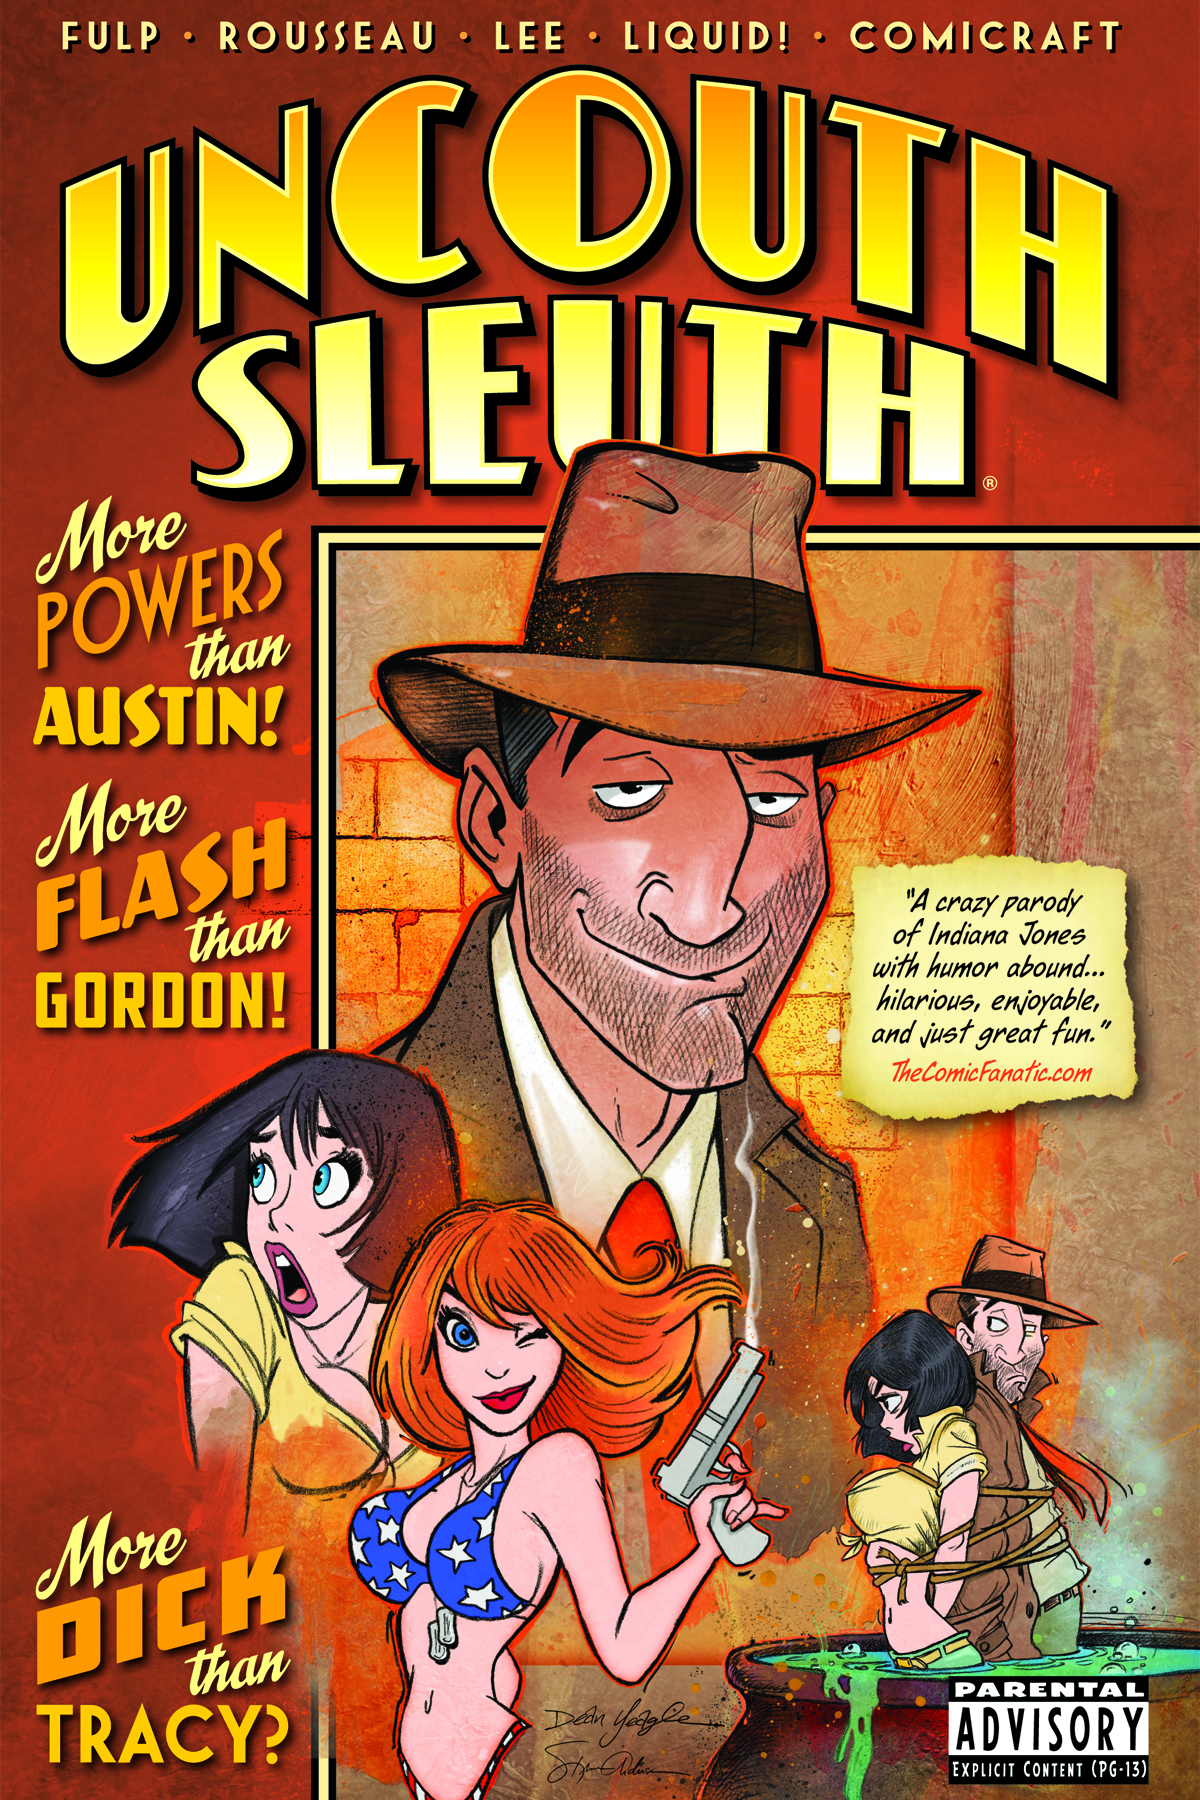 UNCOUTH SLEUTH GN VOL 01